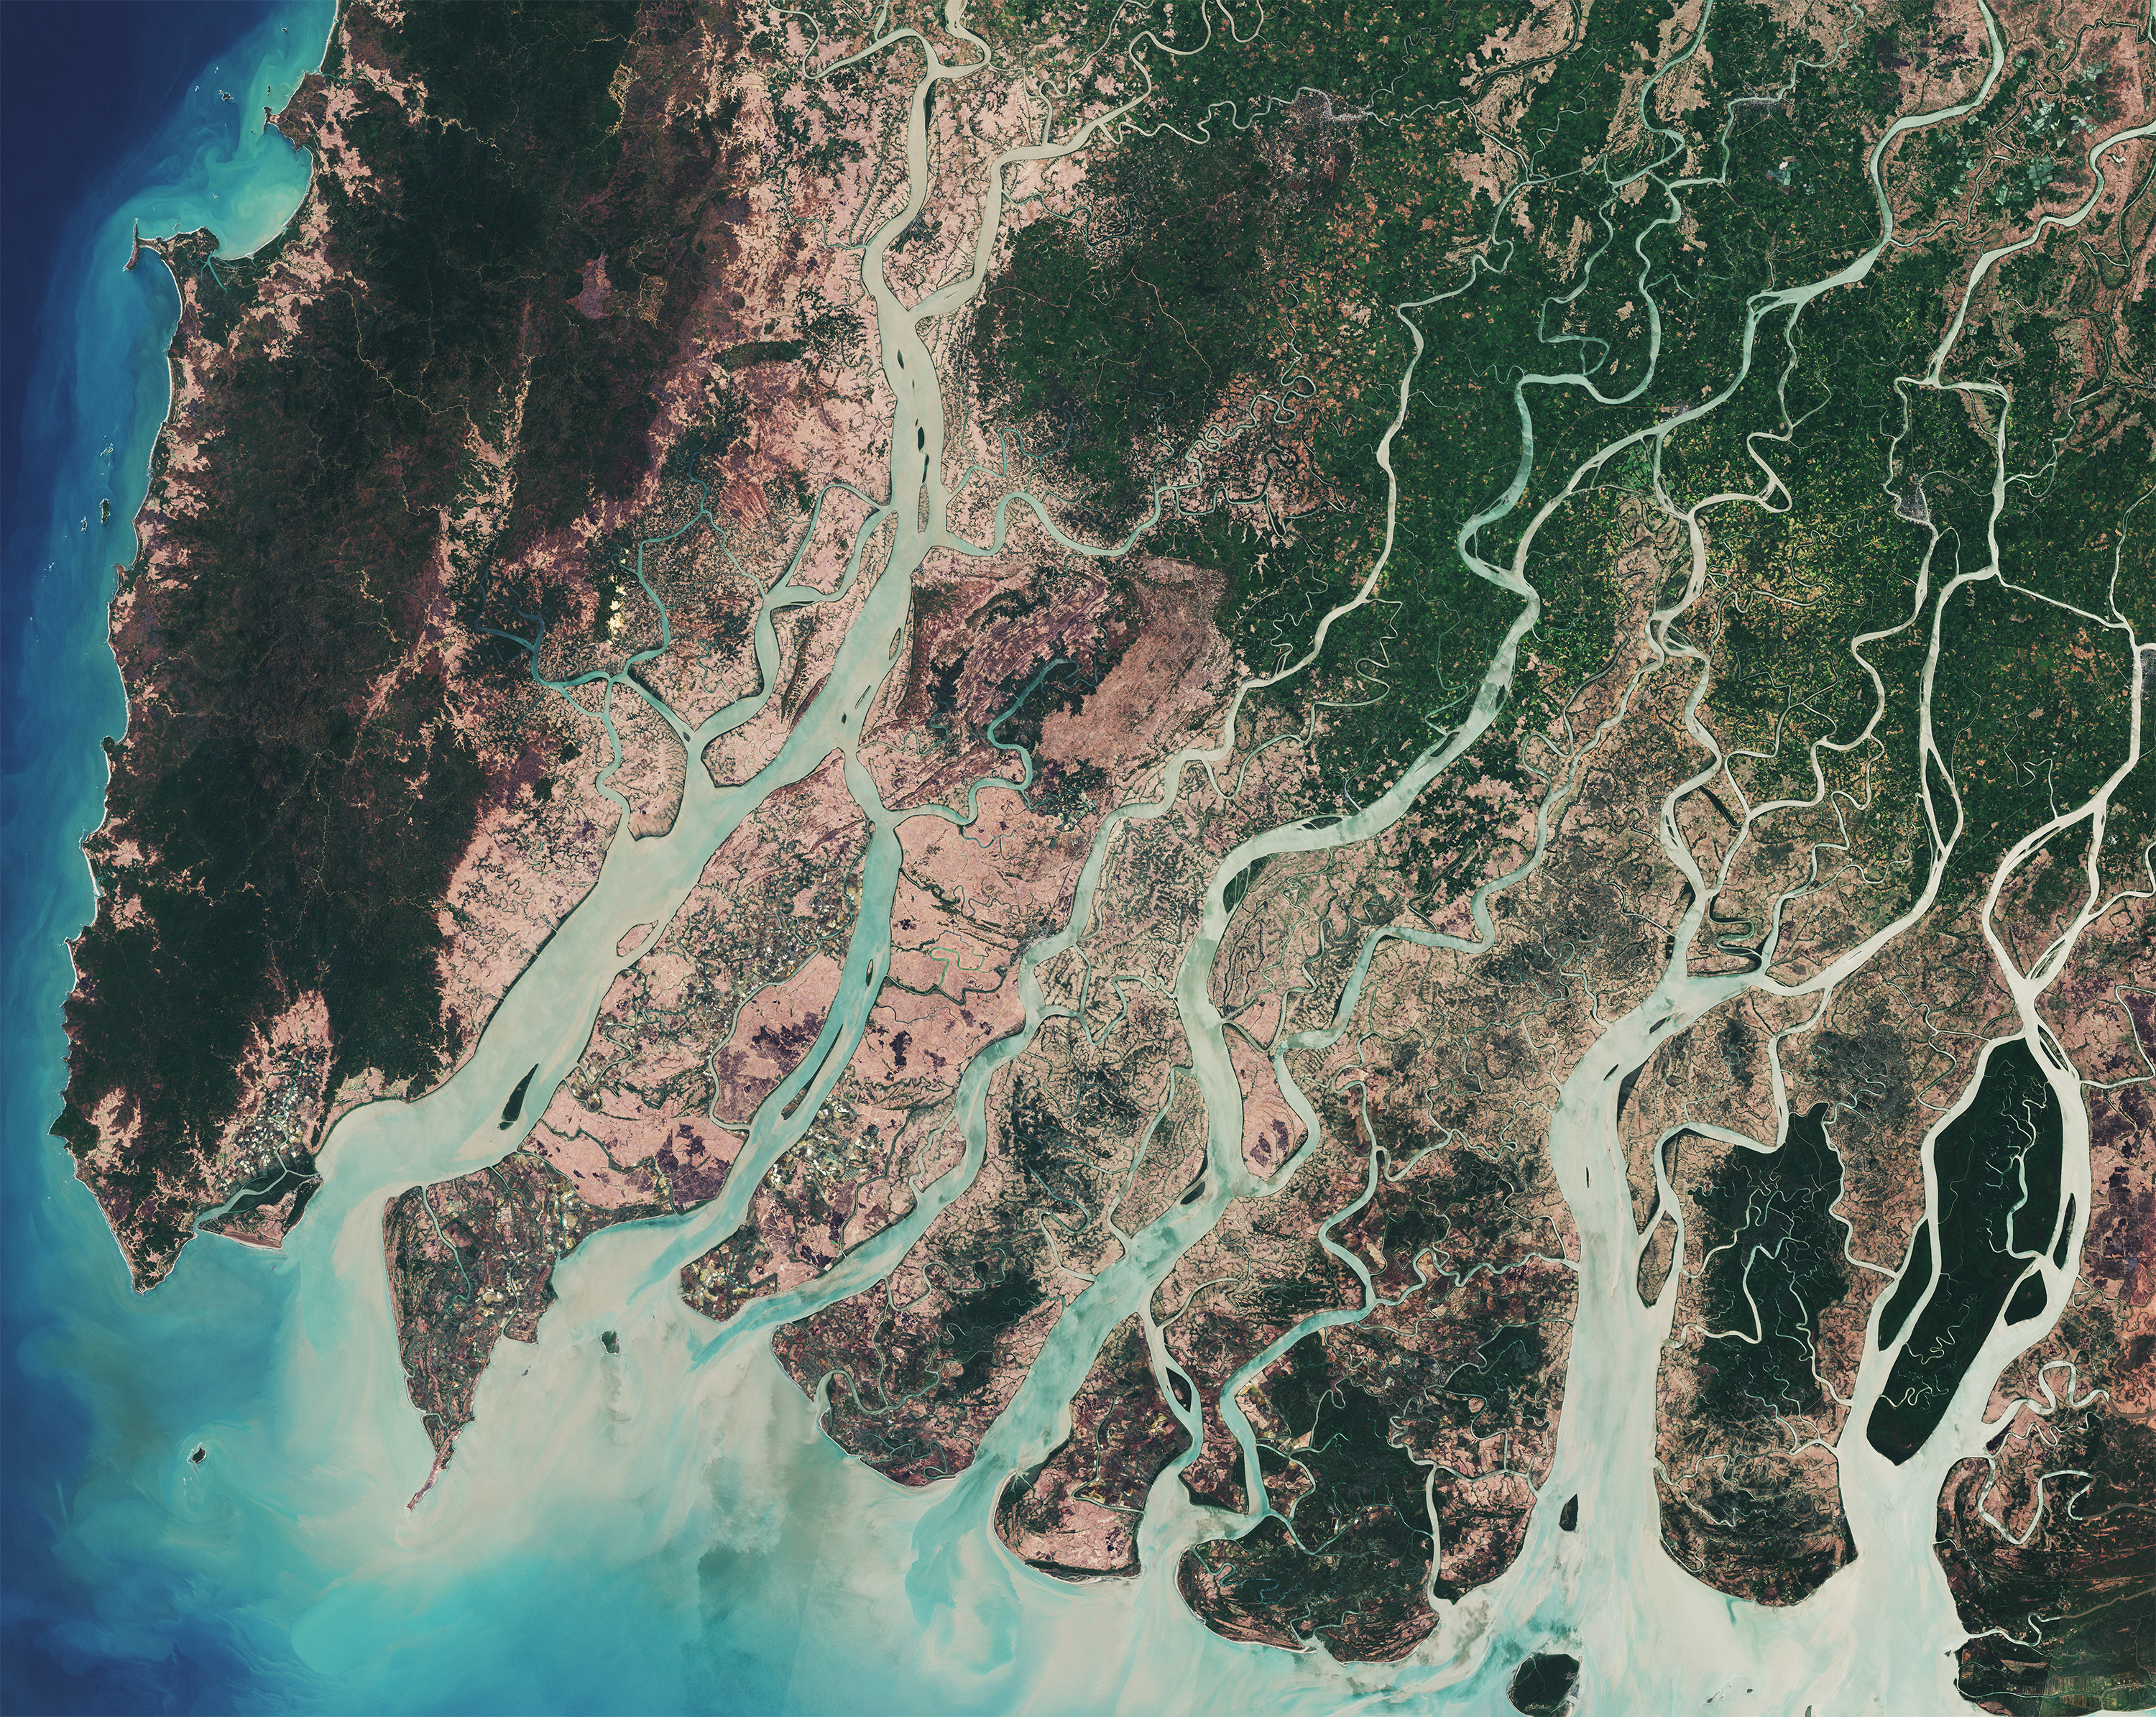 Space in Images - 2017 - 07 - Irrawaddy Delta, Myanmar